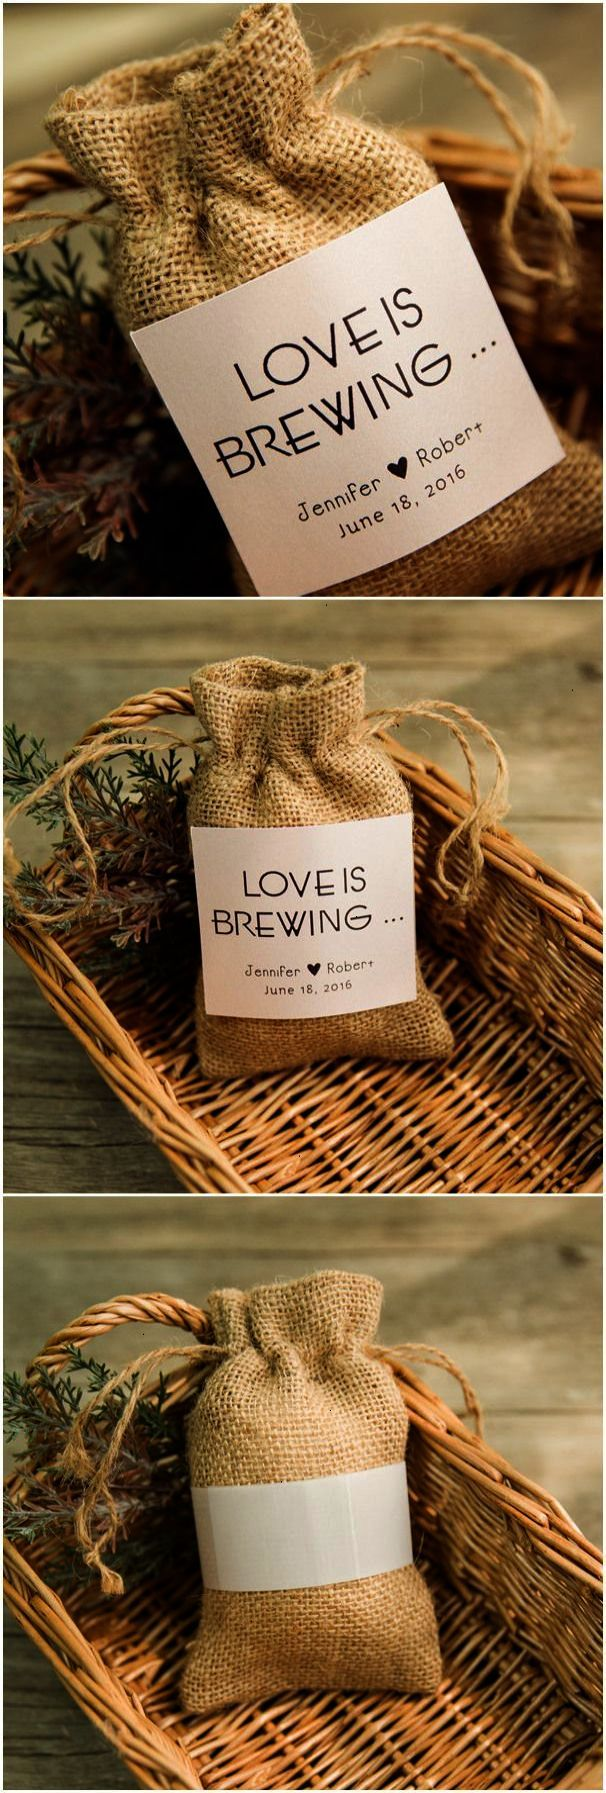 Unique Wedding Favors In The Philippines DIY Wedding Party